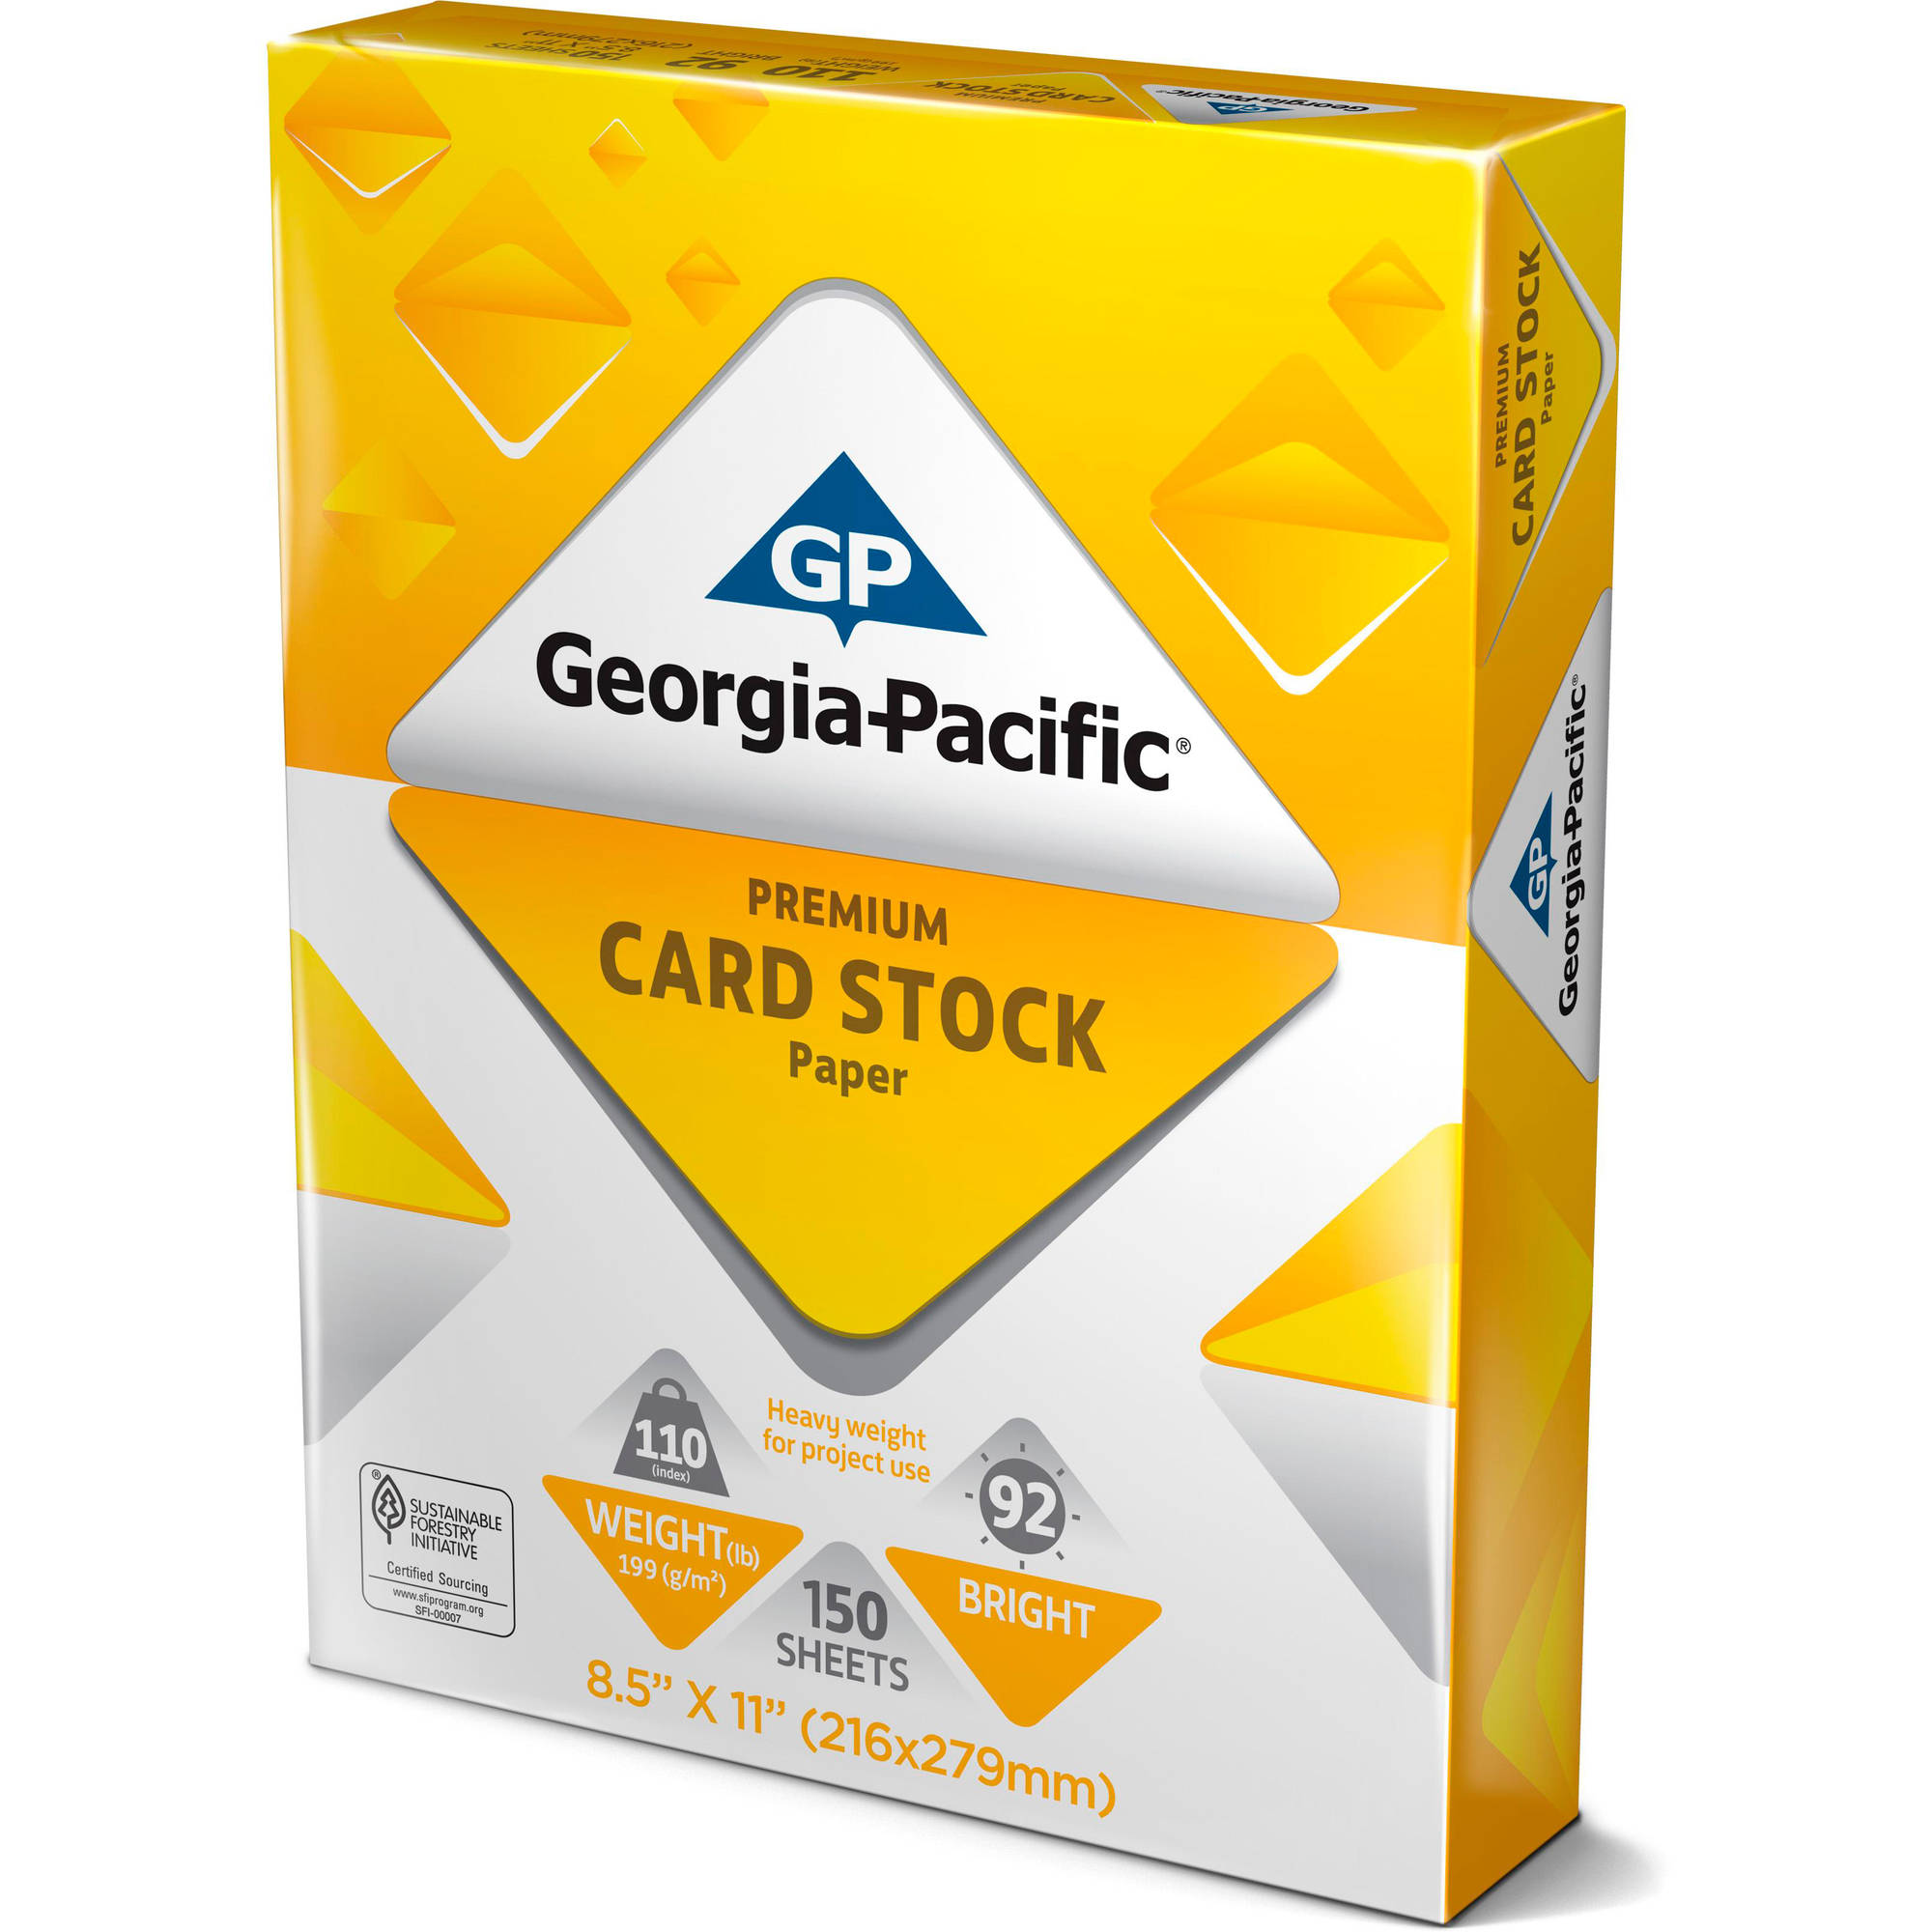 "Georgia-Pacific White Cardstock Paper, 8.5"" x 11"", 110 lb, 150 Sheets"